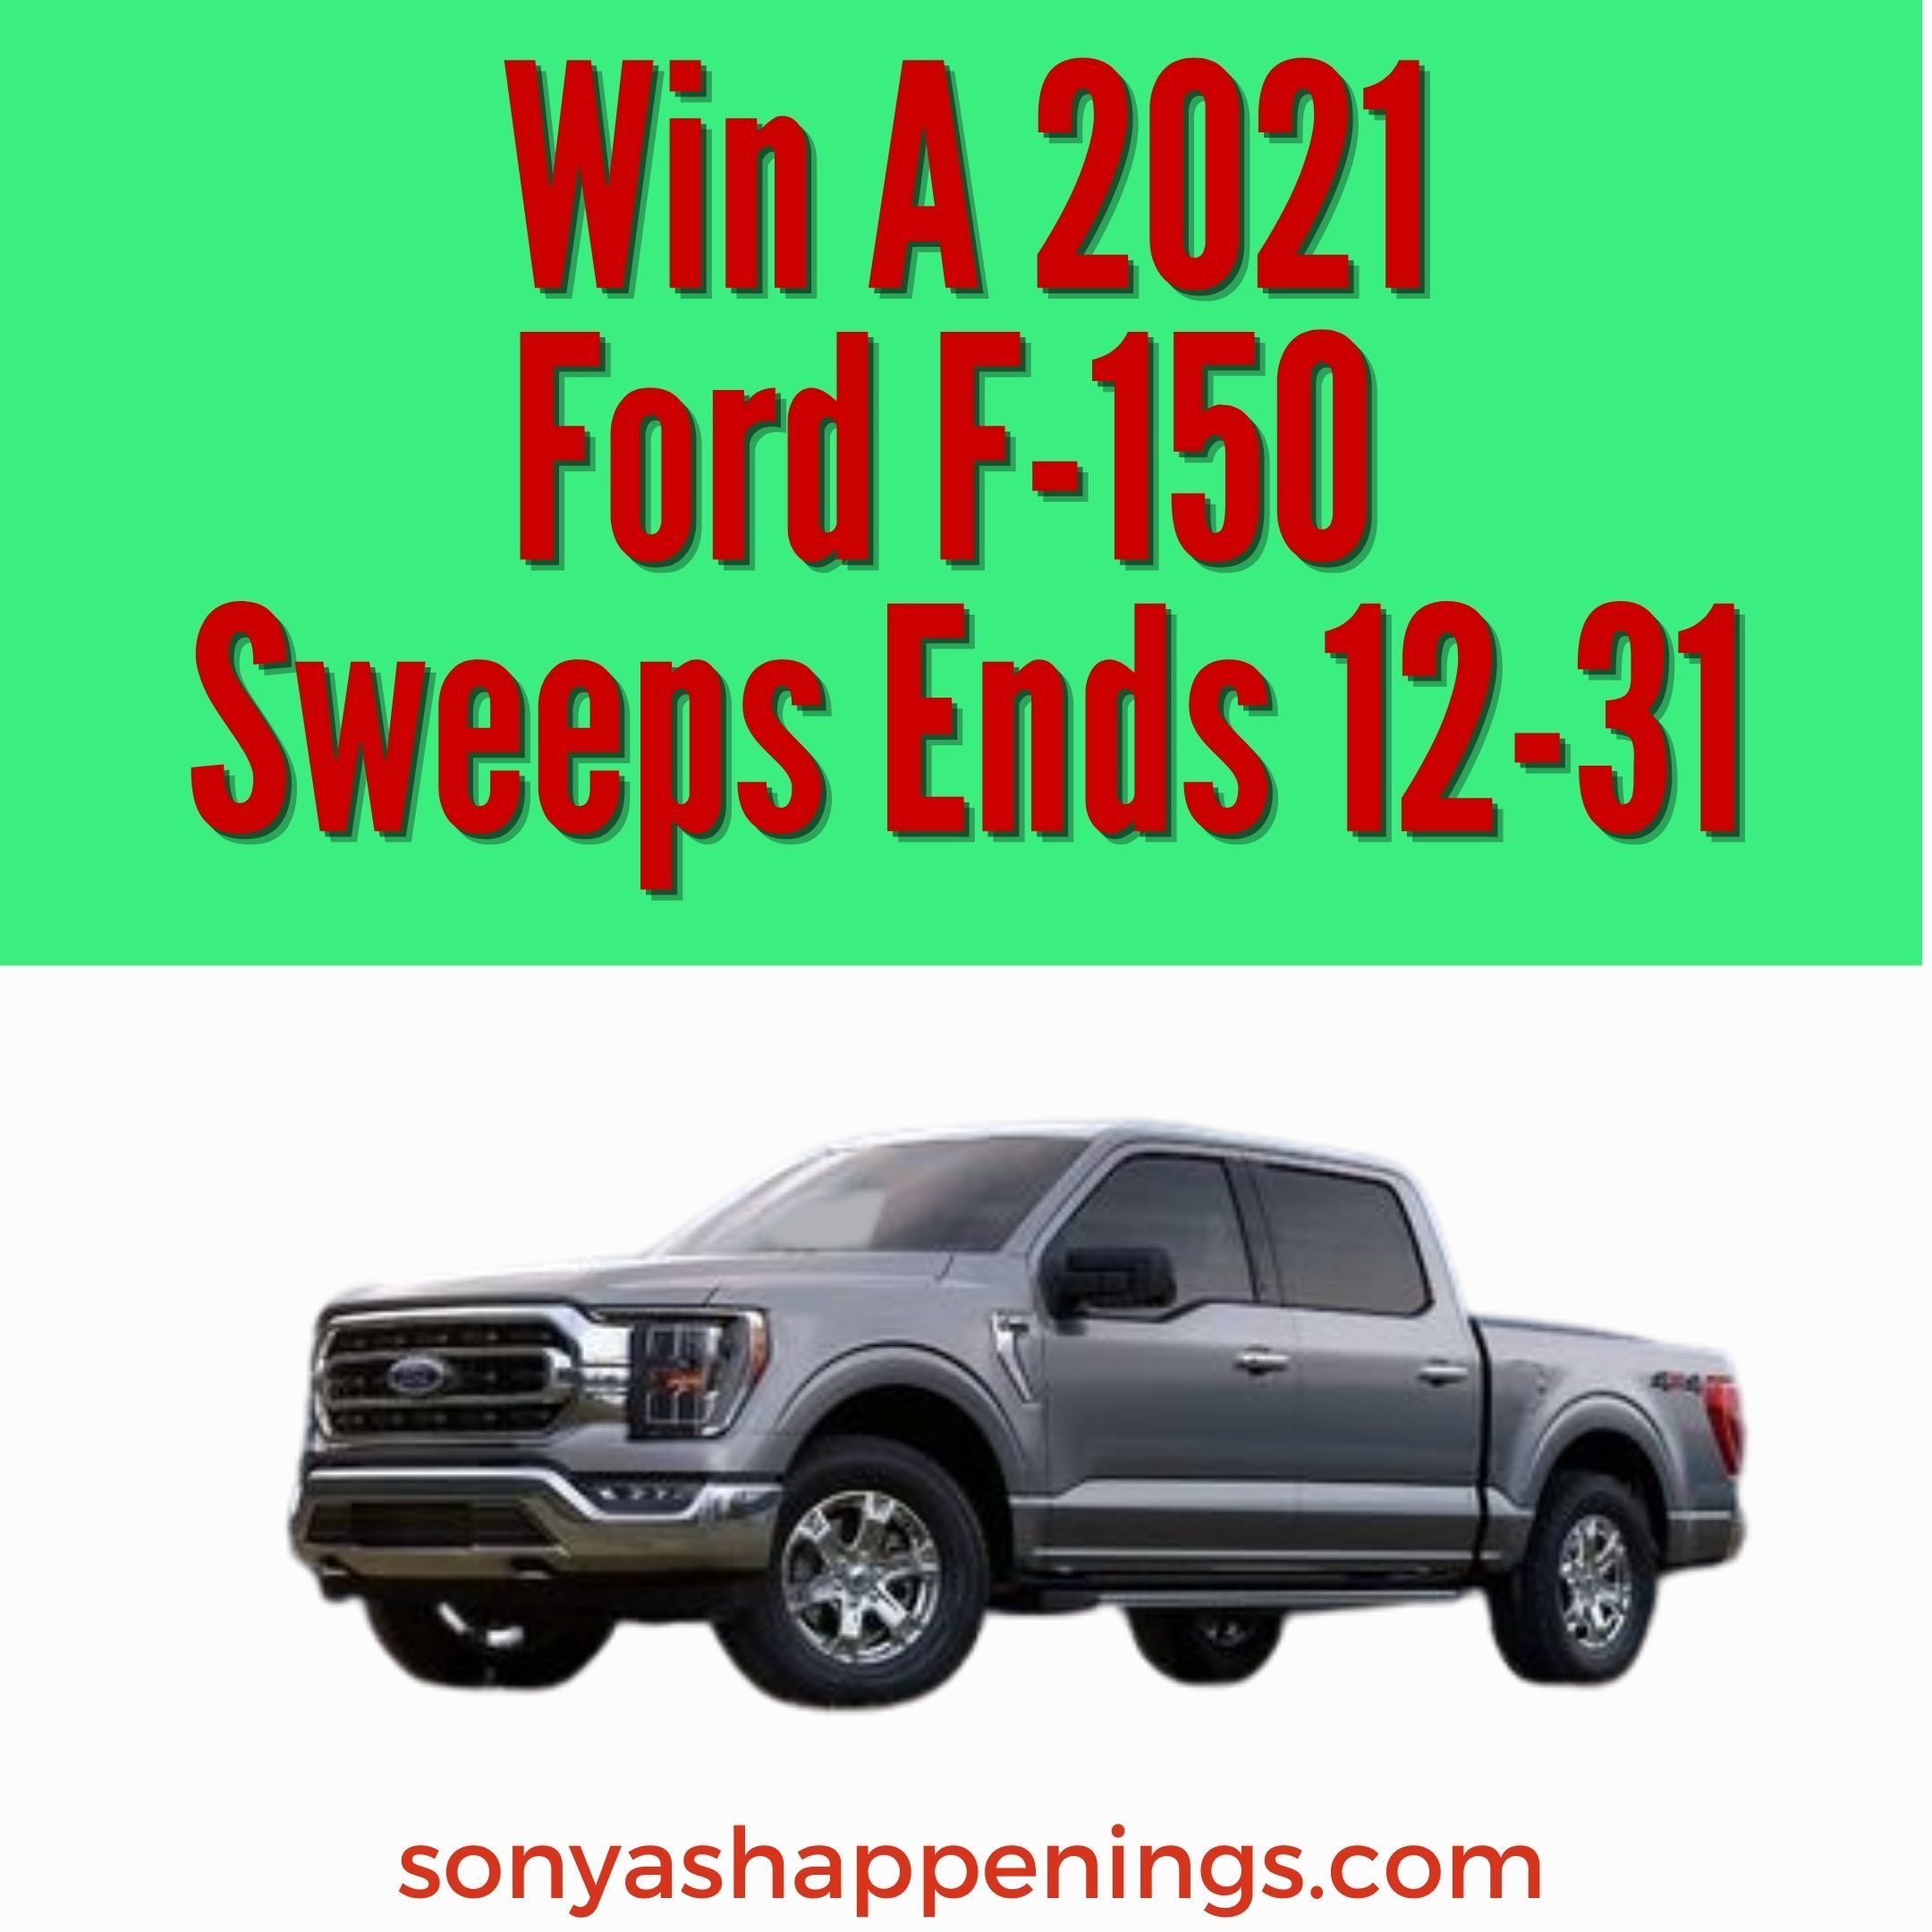 Win a 2021 Ford F150 in 2020 Sweepstakes, Ford f150, Ford